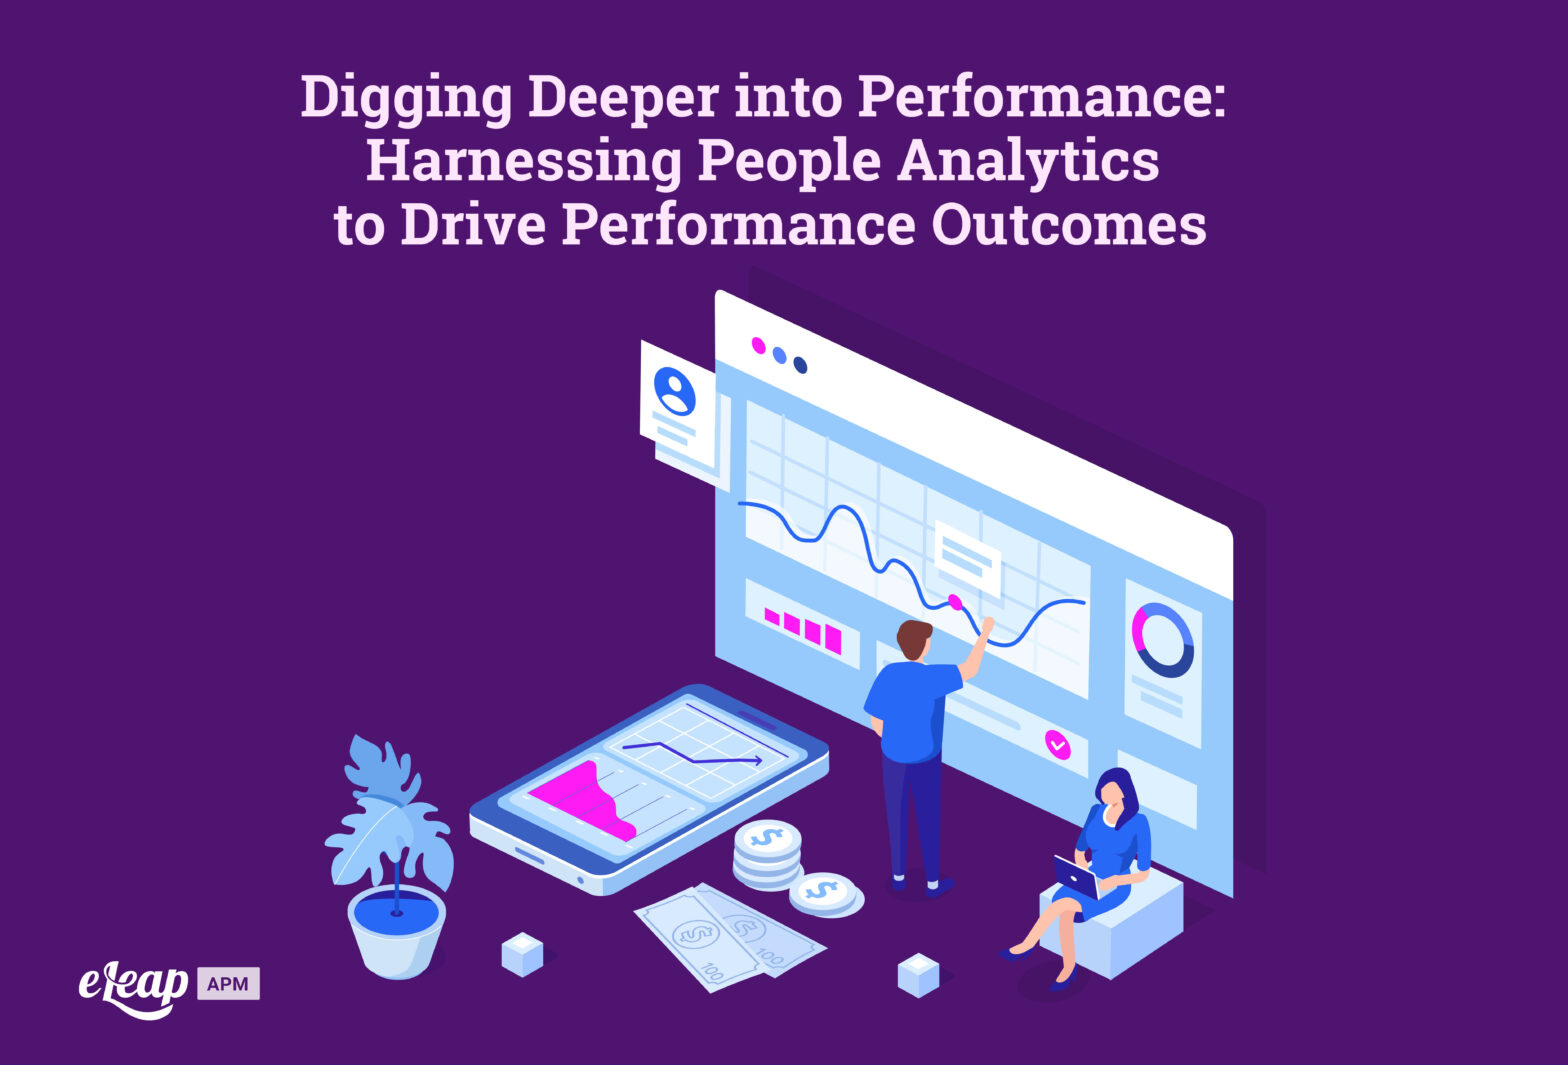 Digging Deeper into Performance: Harnessing People Analytics to Drive Performance Outcomes